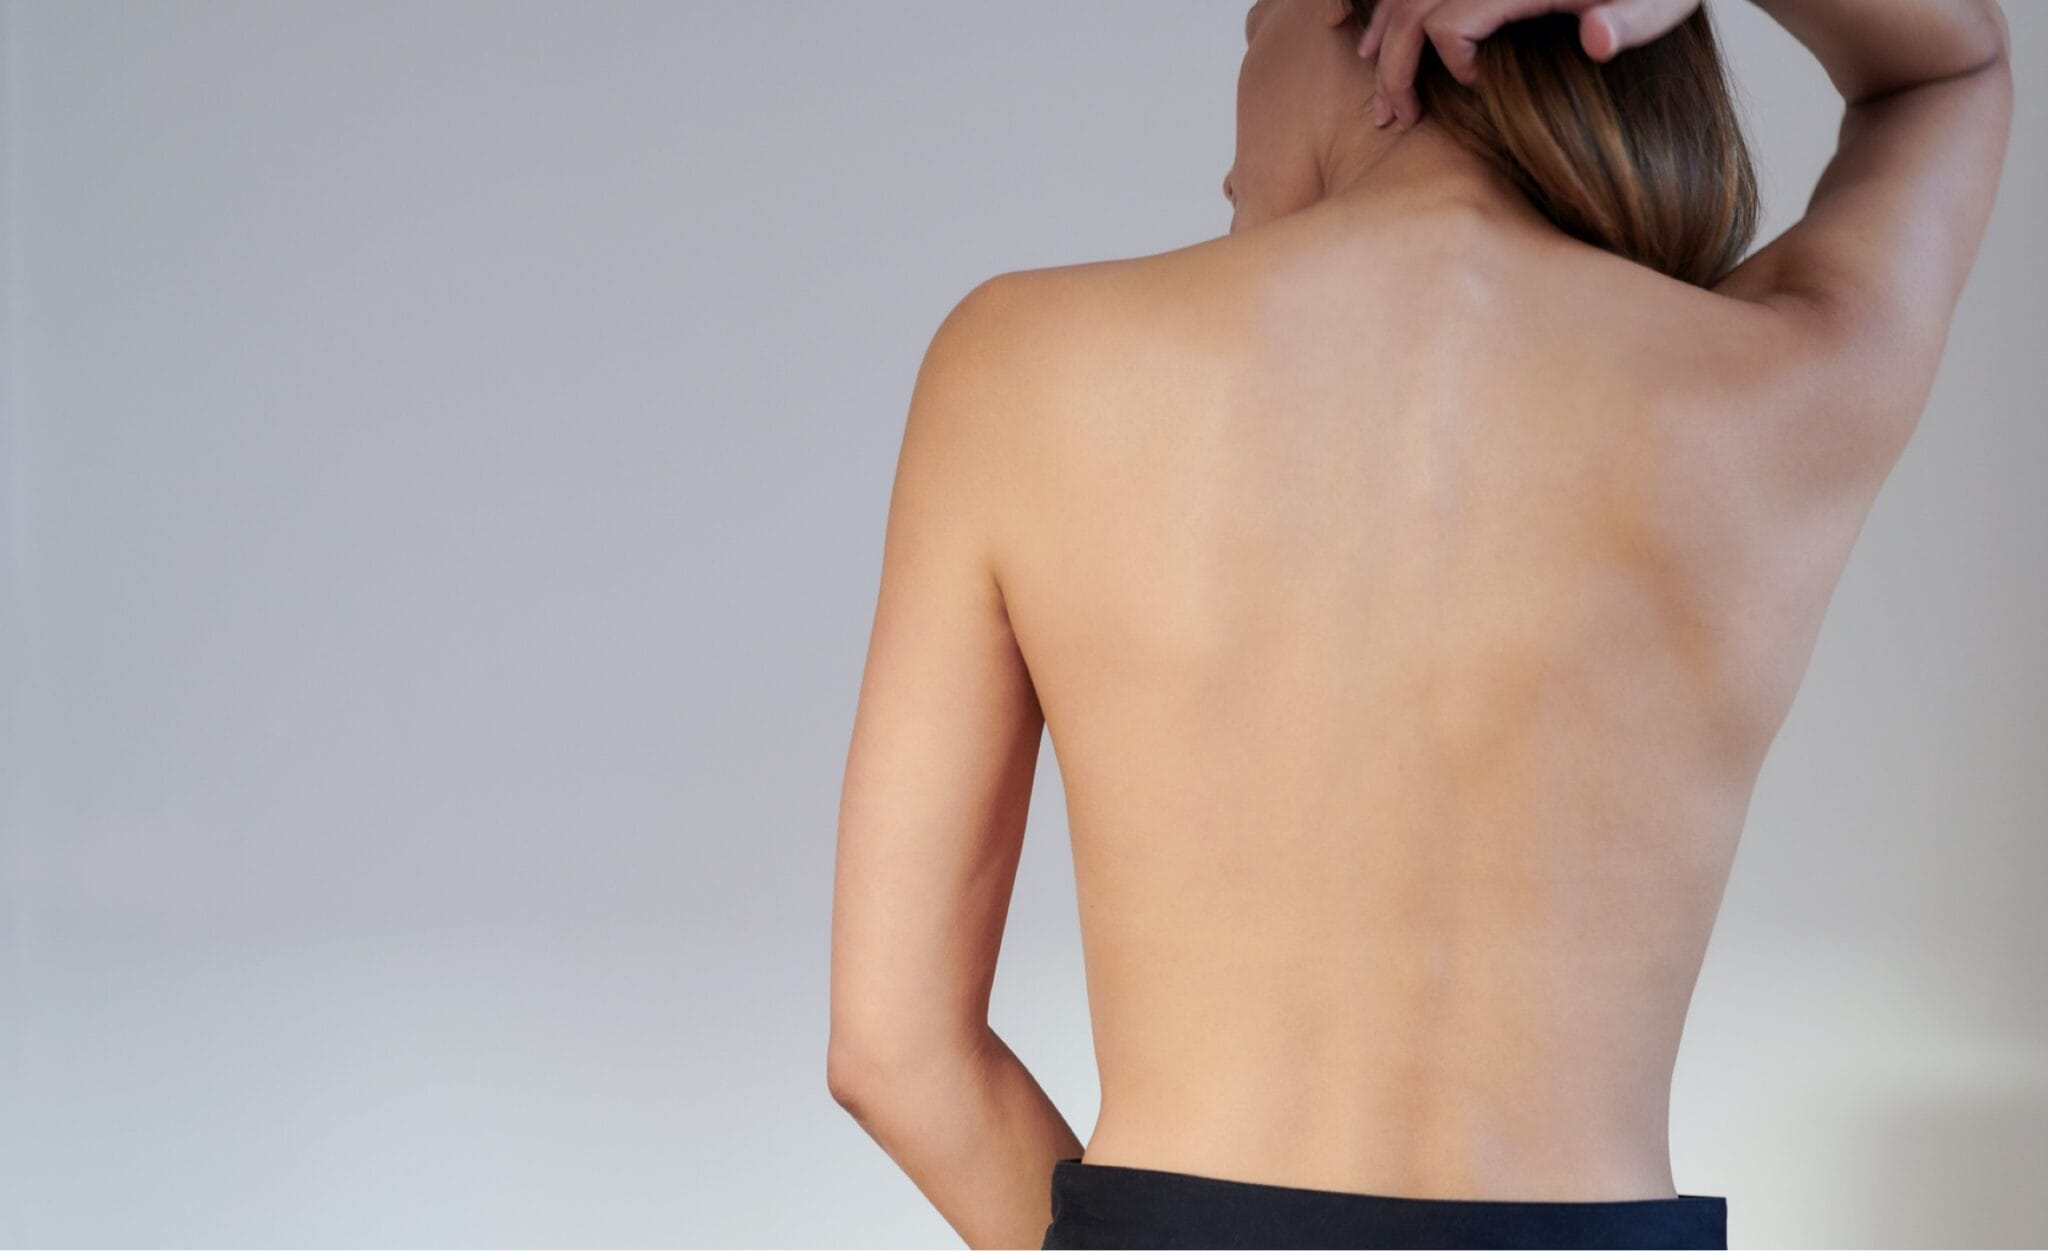 woman's bare back